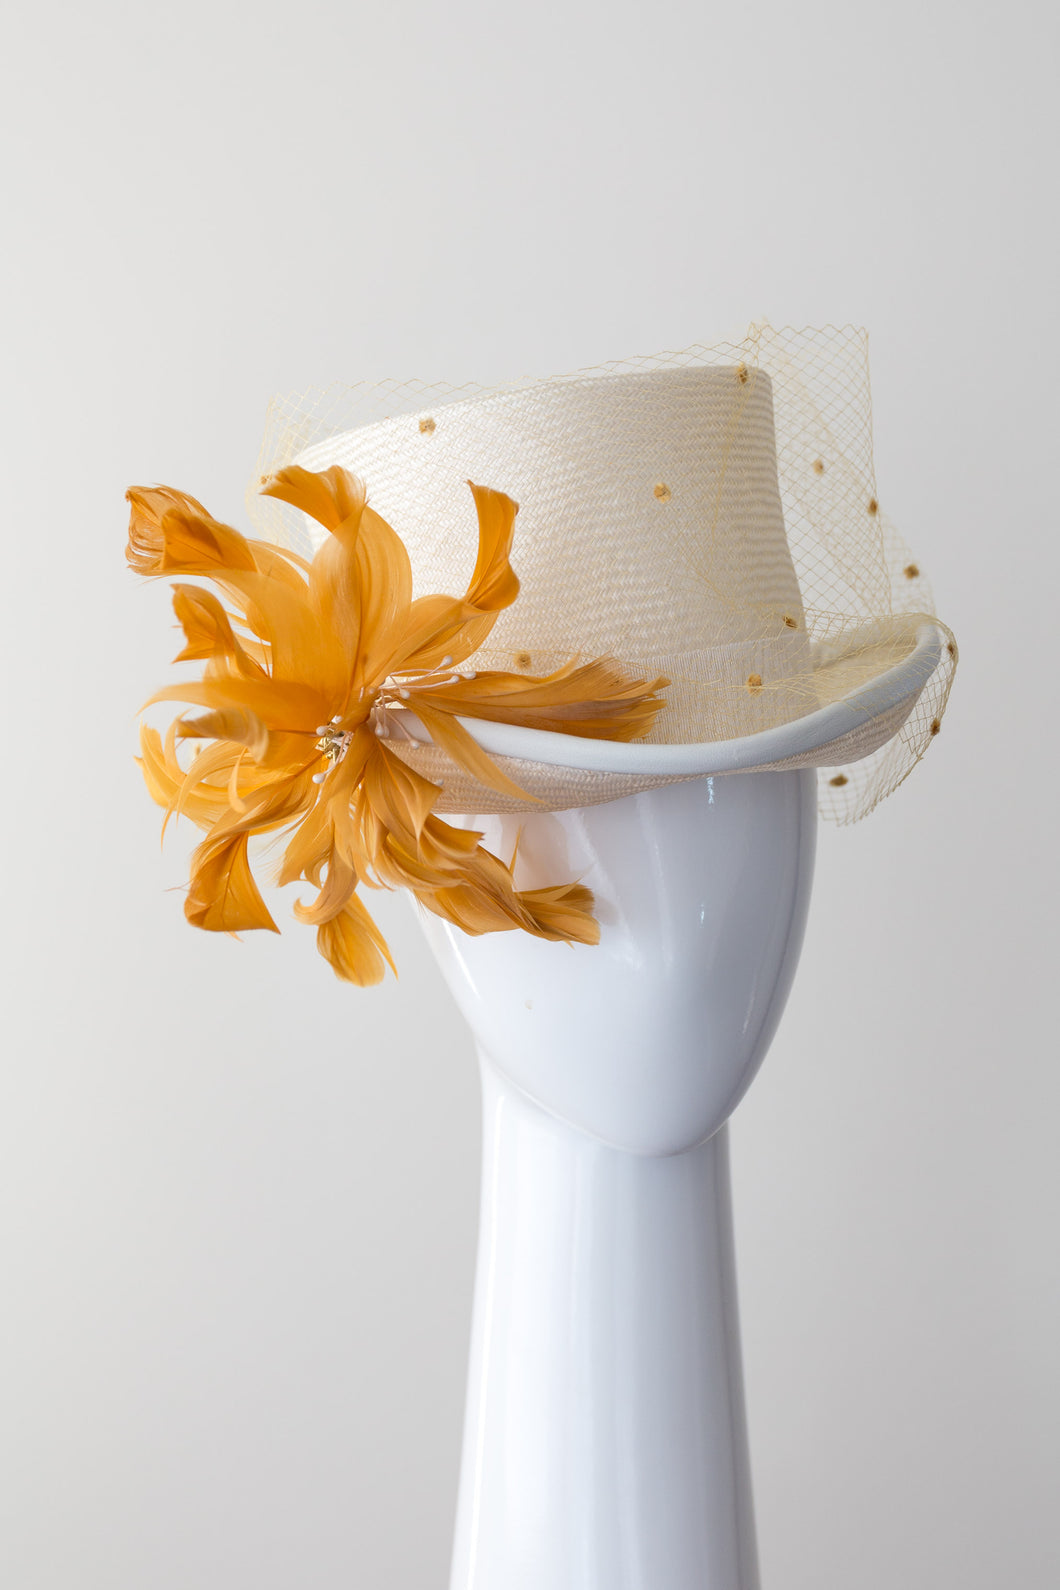 SIENNA-cream and mustard top hat with veiling and leather trim